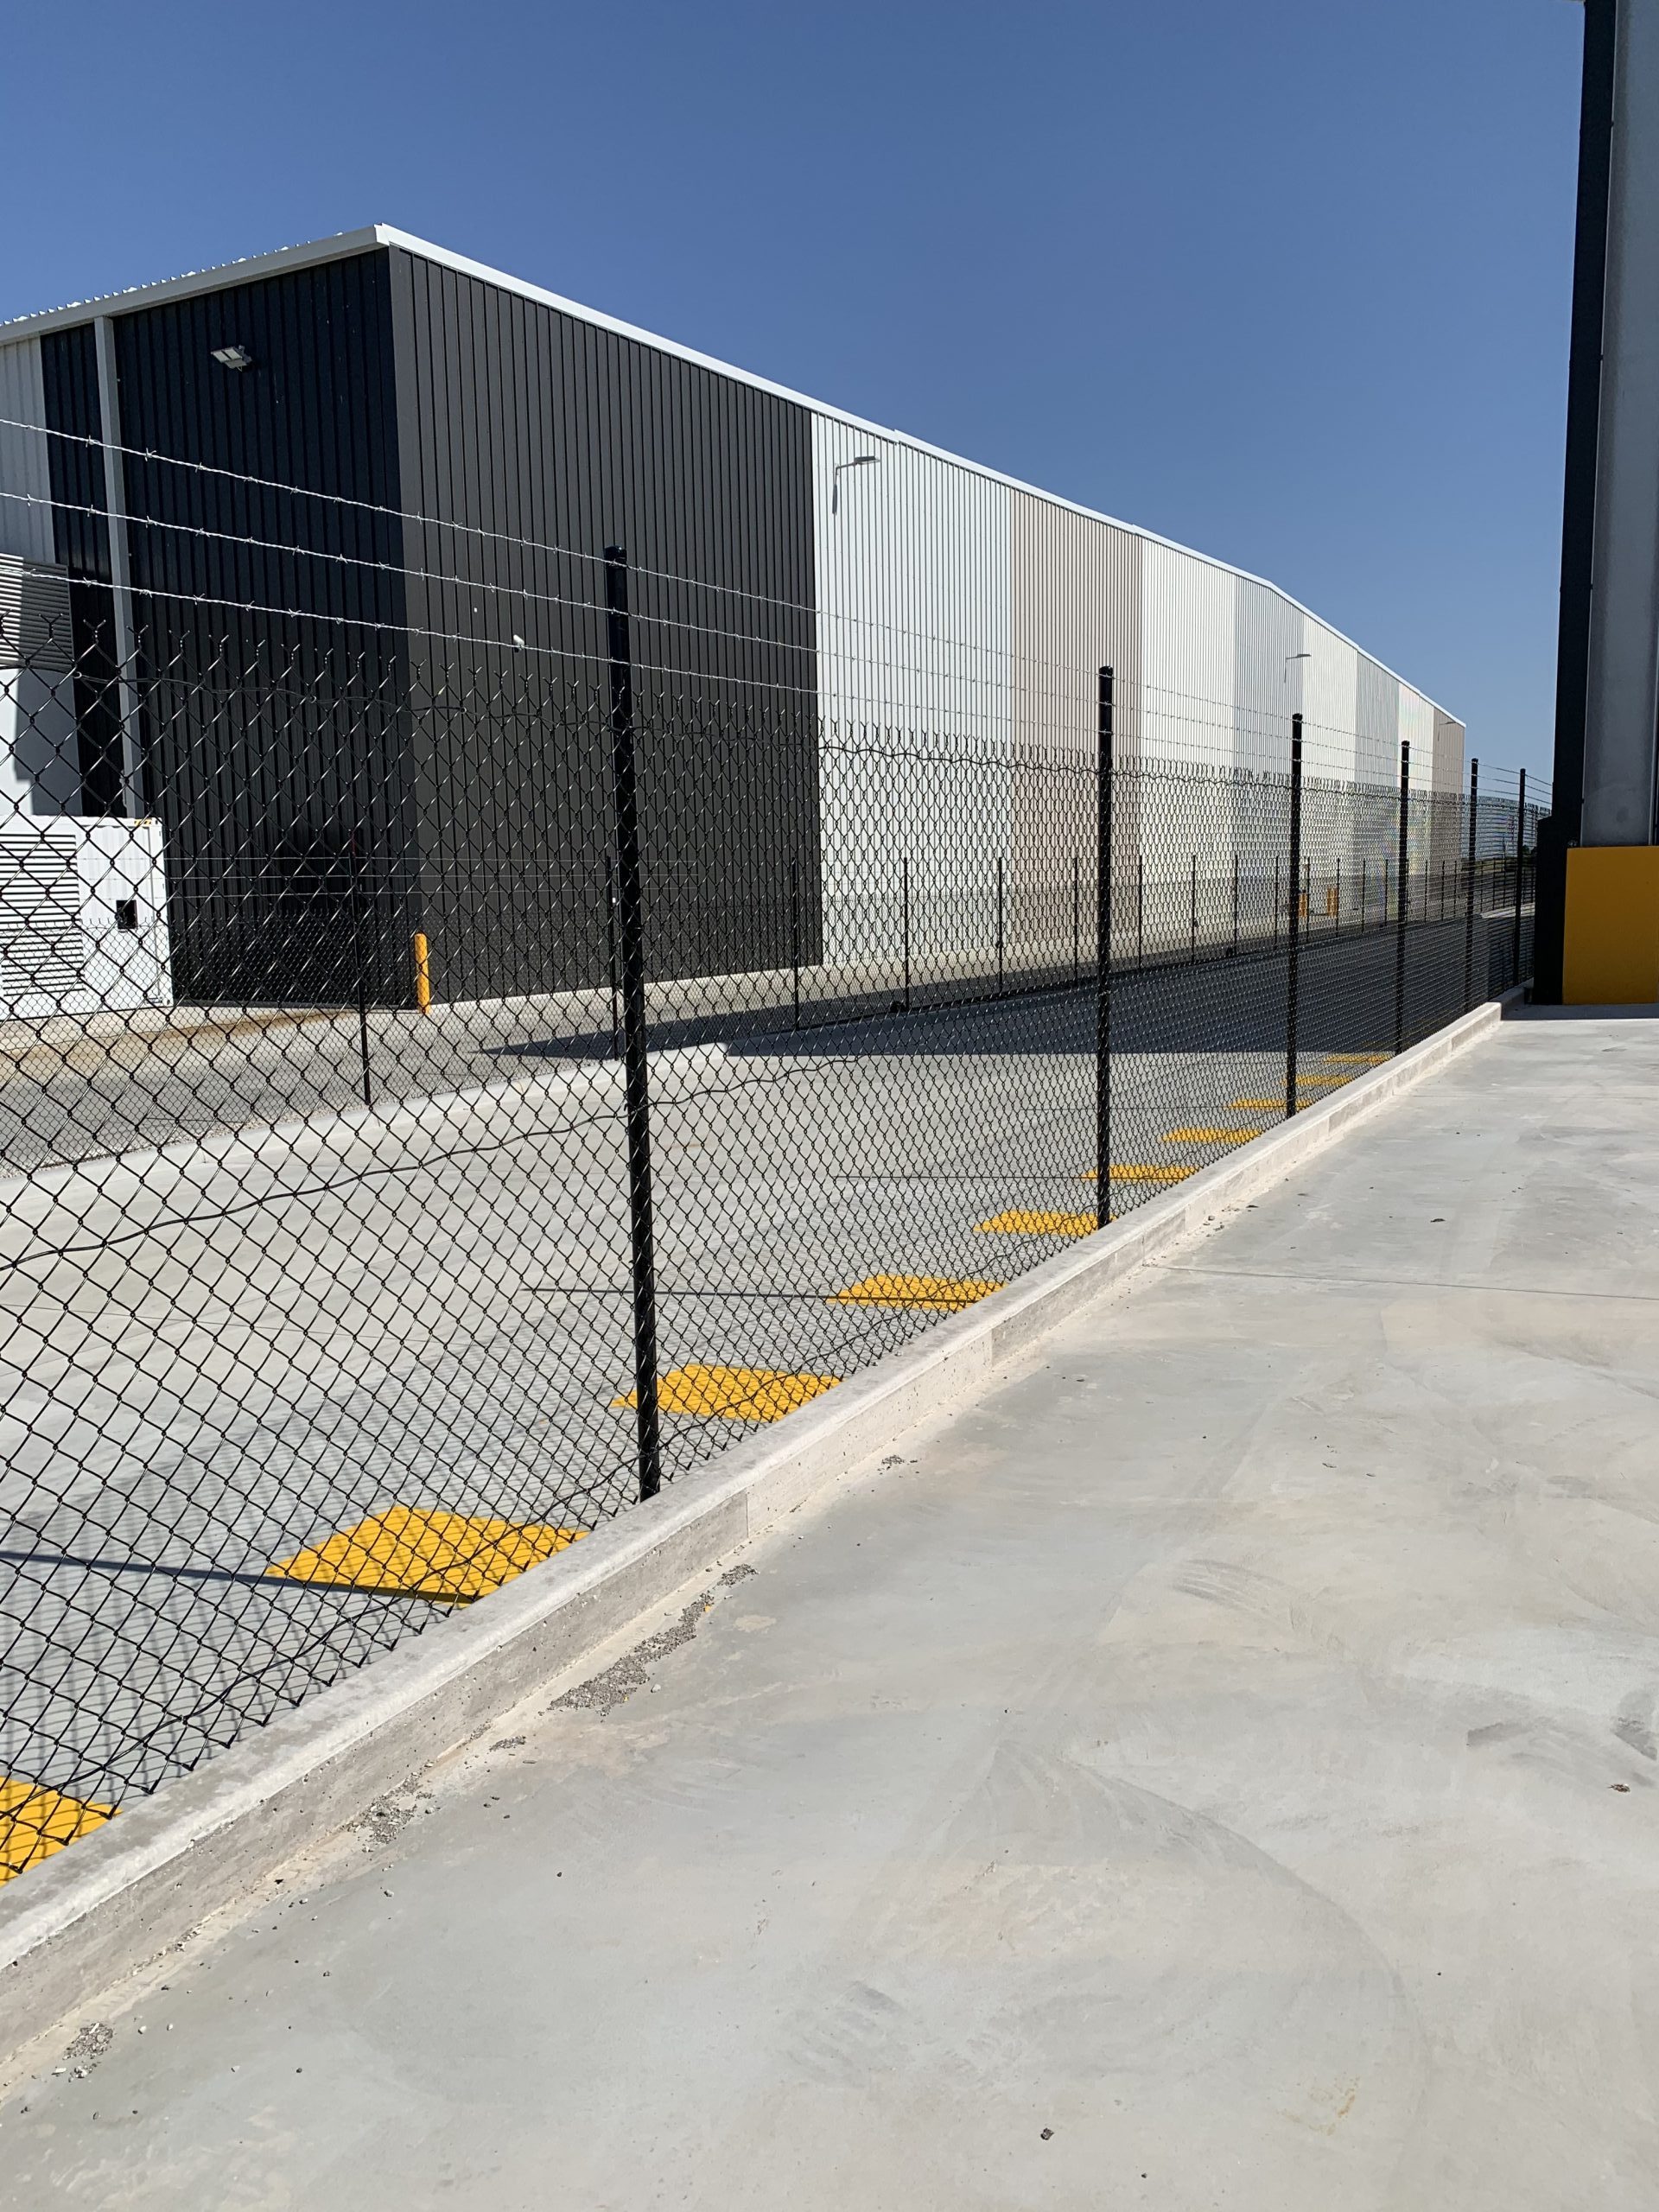 Melbourne security fencing